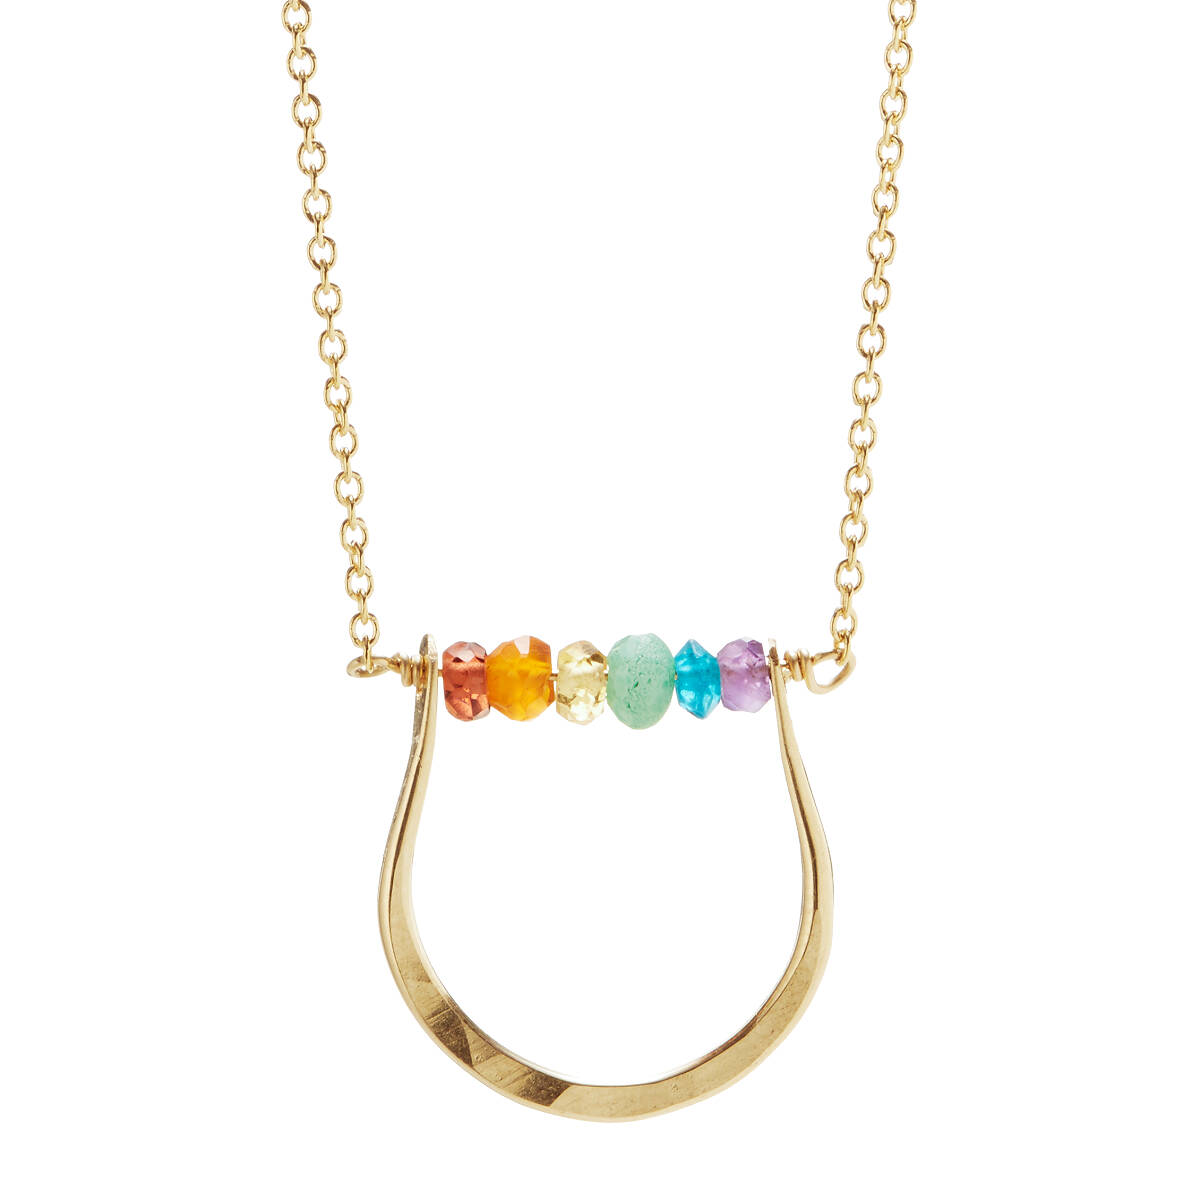 pdp women main and tsavorite collectibles rainbow in gold yellow new pink designs necklace with cable sapphires products